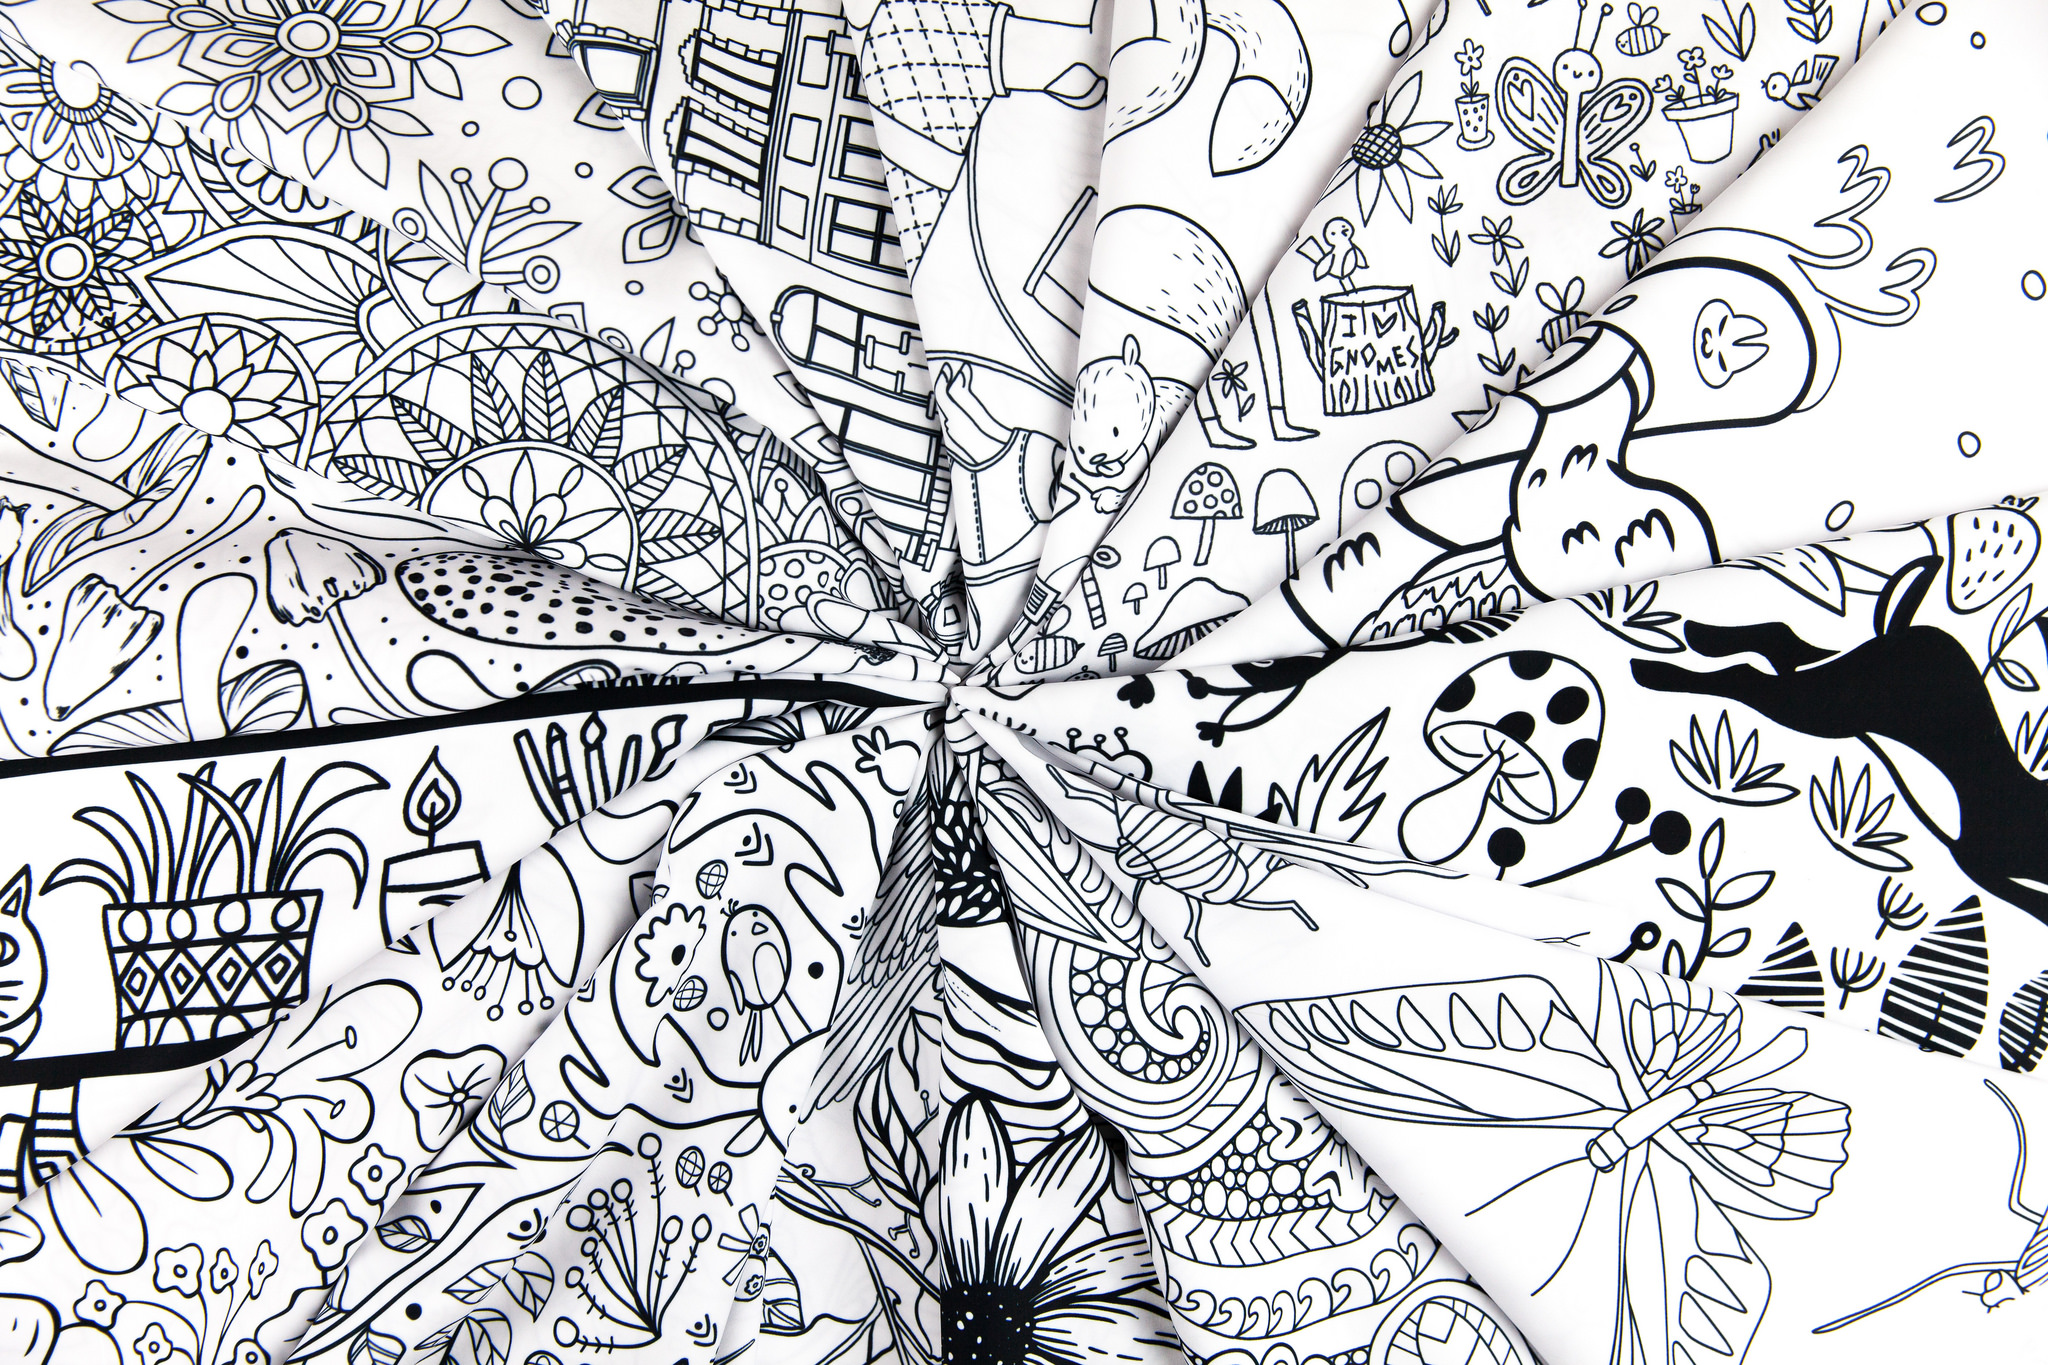 The Top 16 Lake Coloring Book Design Challenge Winners